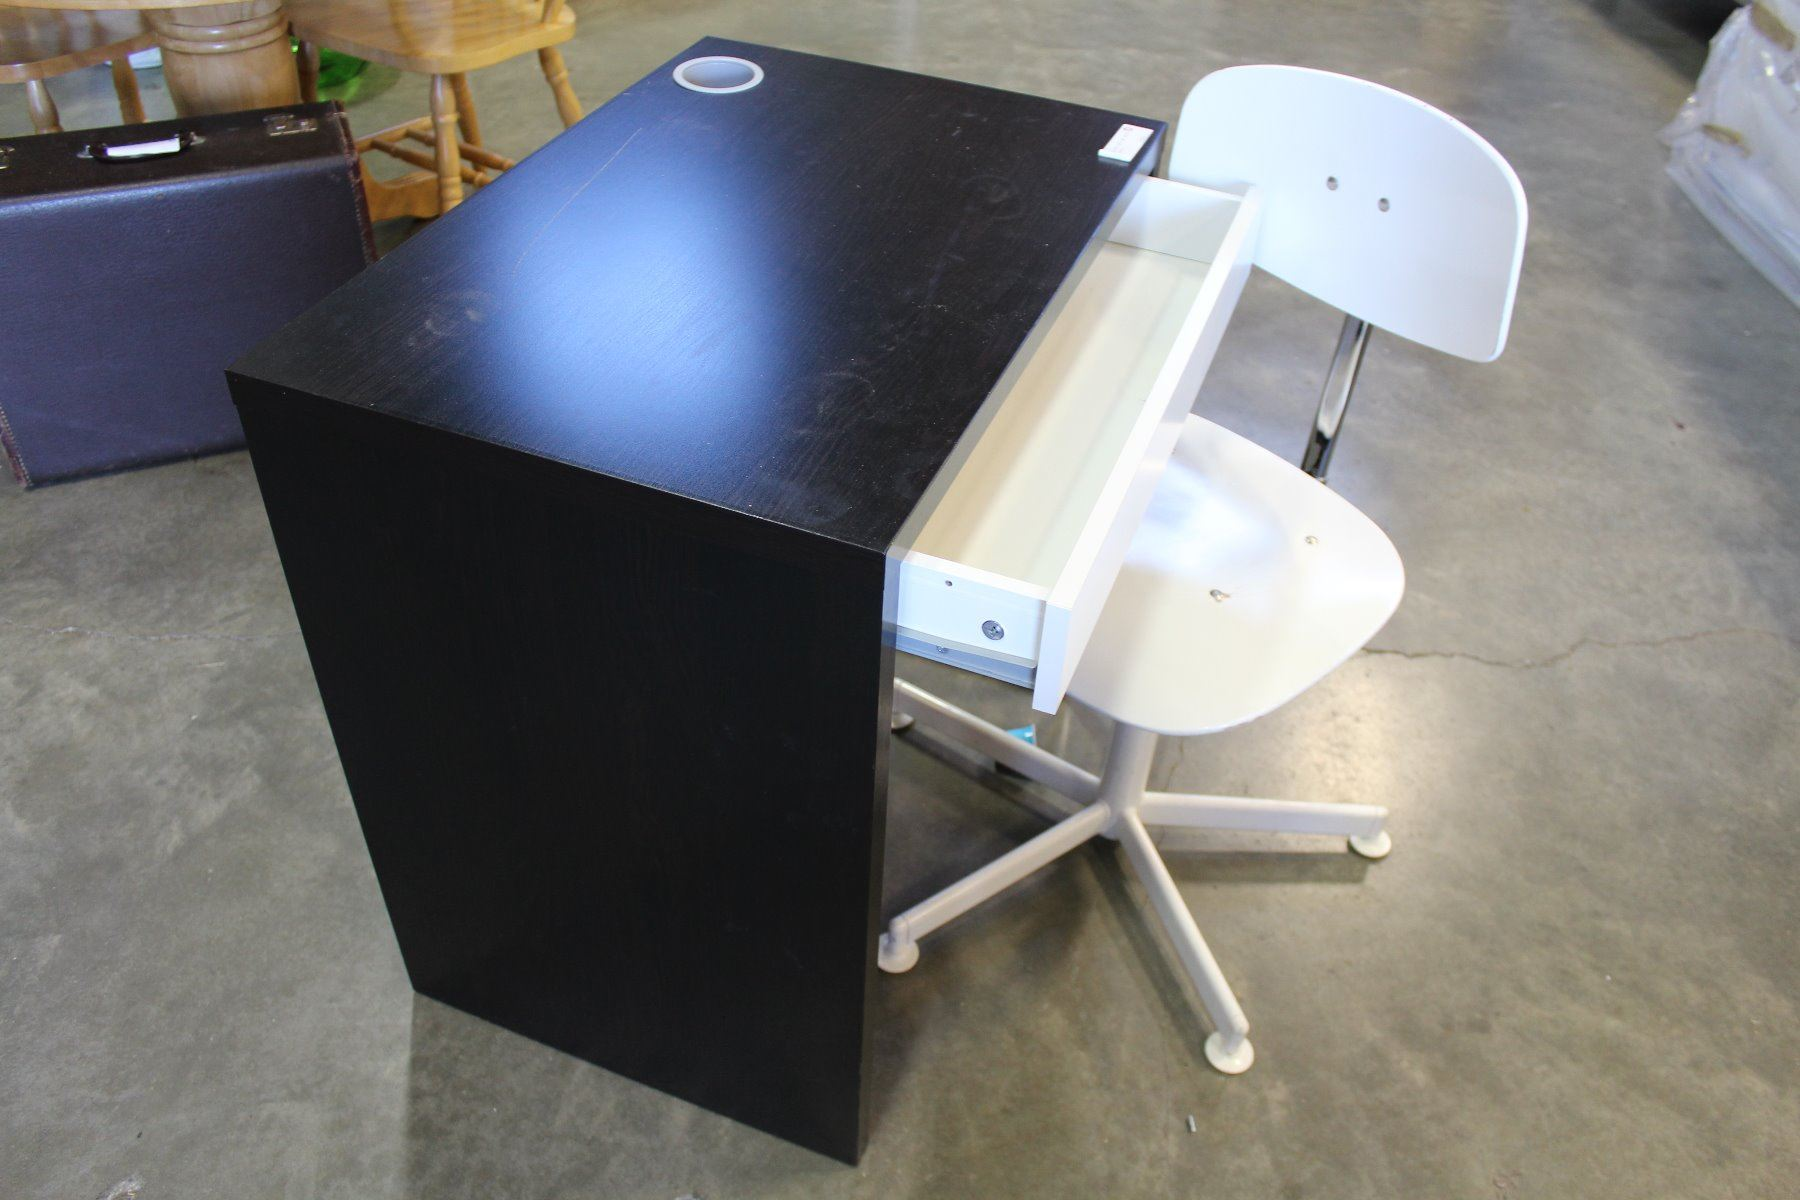 Image 2 Small Modern Desk And White Office Chair